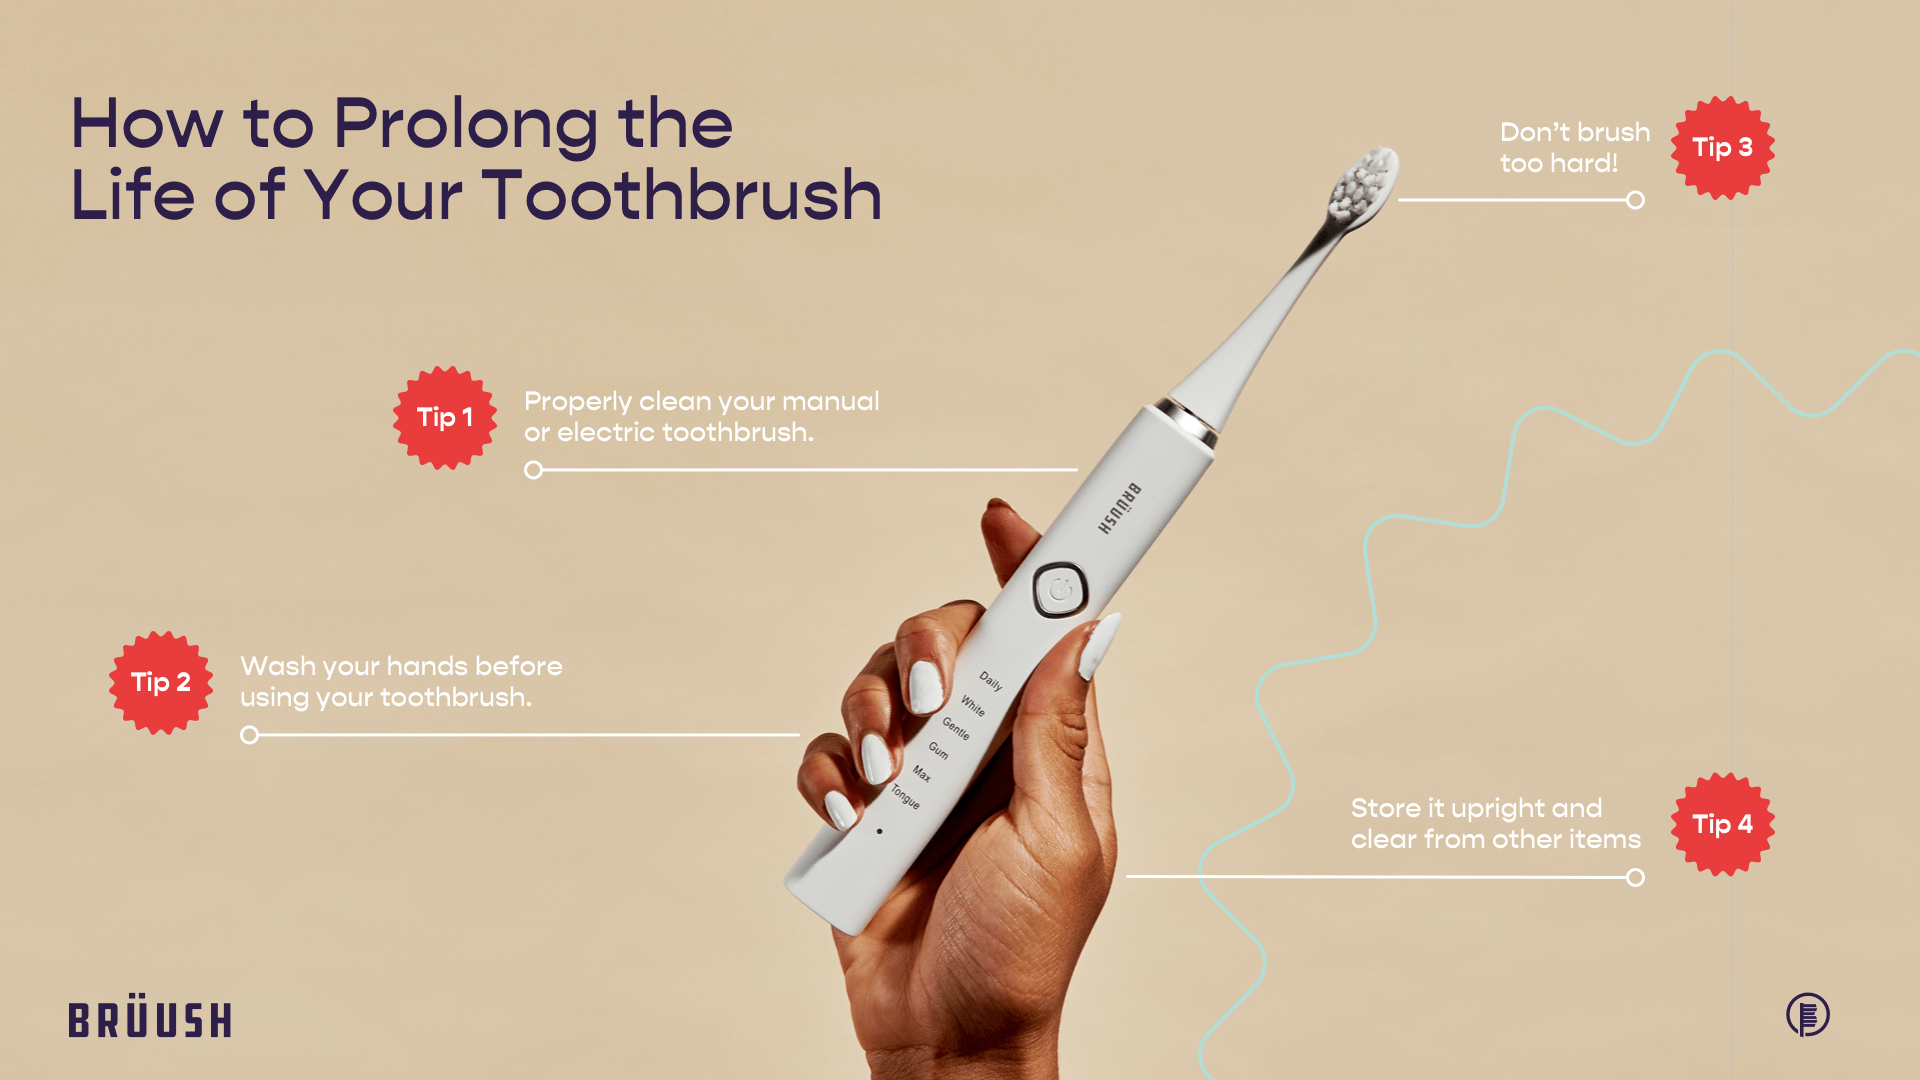 Tips on Prolonging the Life of Your Toothbrush